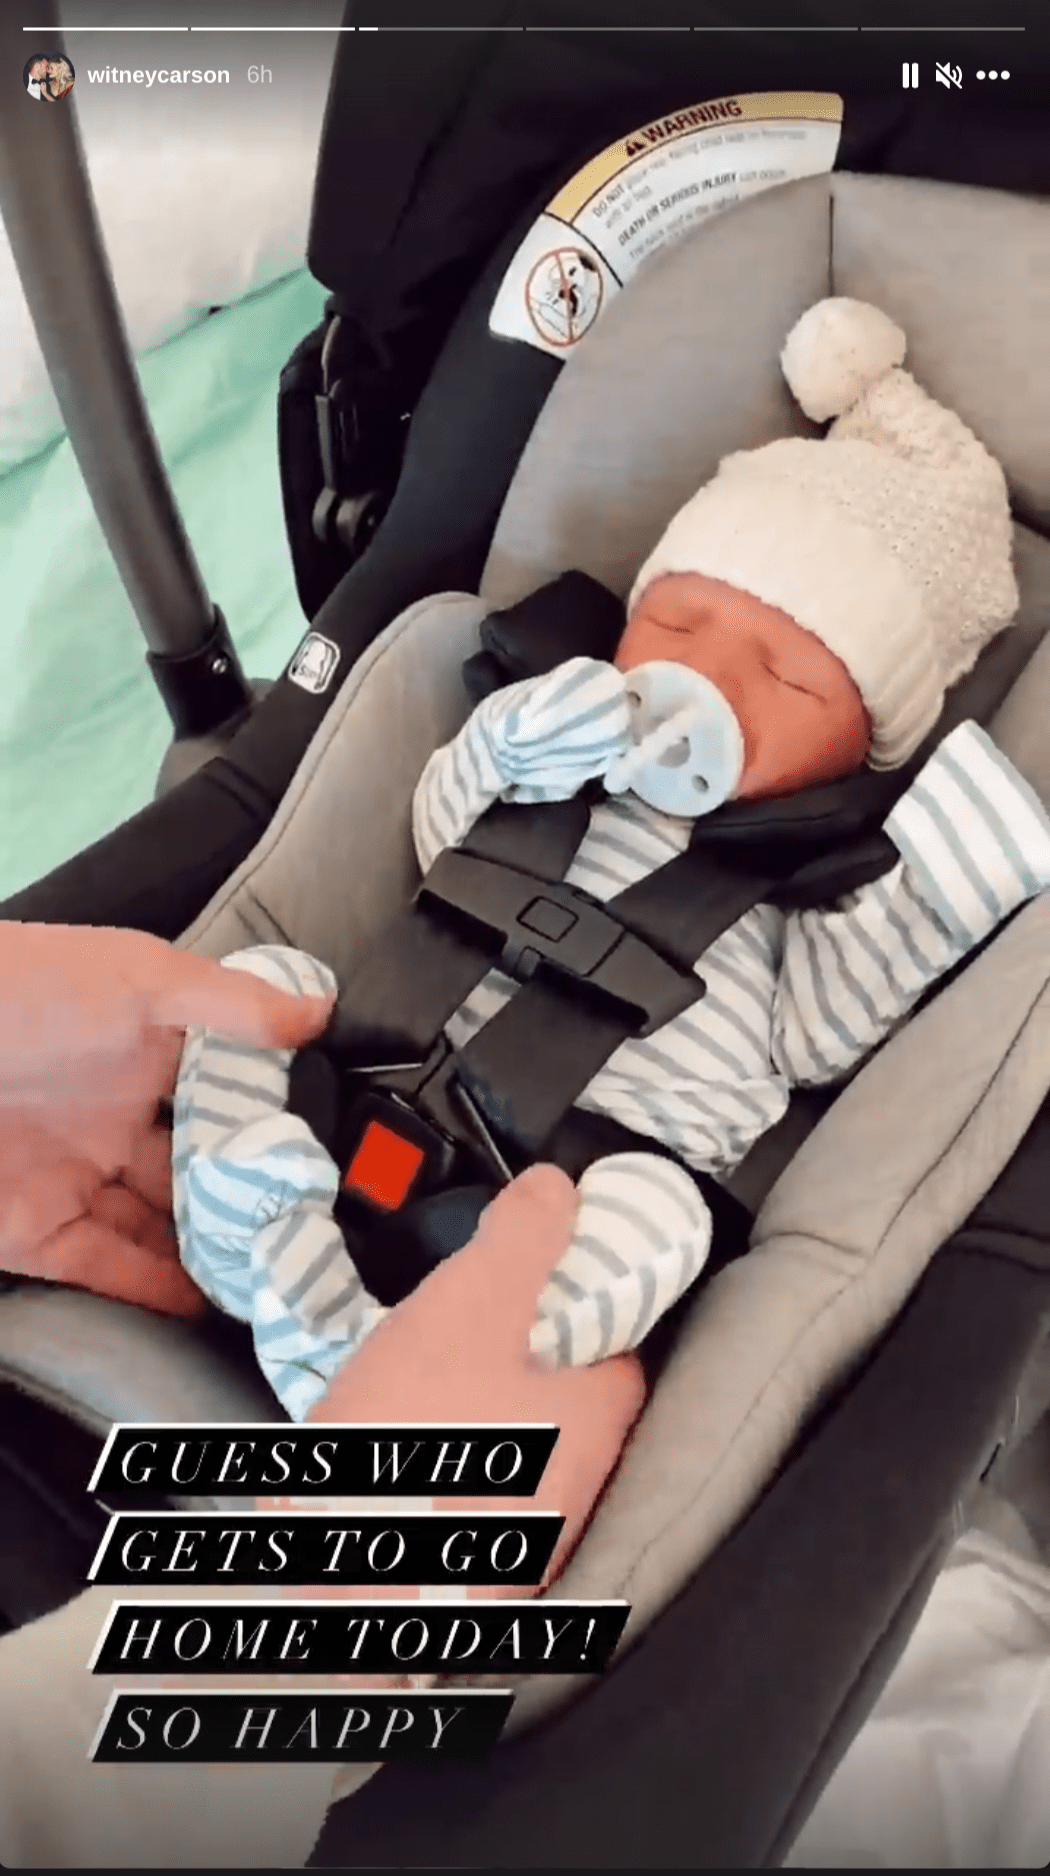 Witney Carson is excitedly taking her newborn son home for the first time on January 7, 2020. | Source: Instagram/witneycarson.